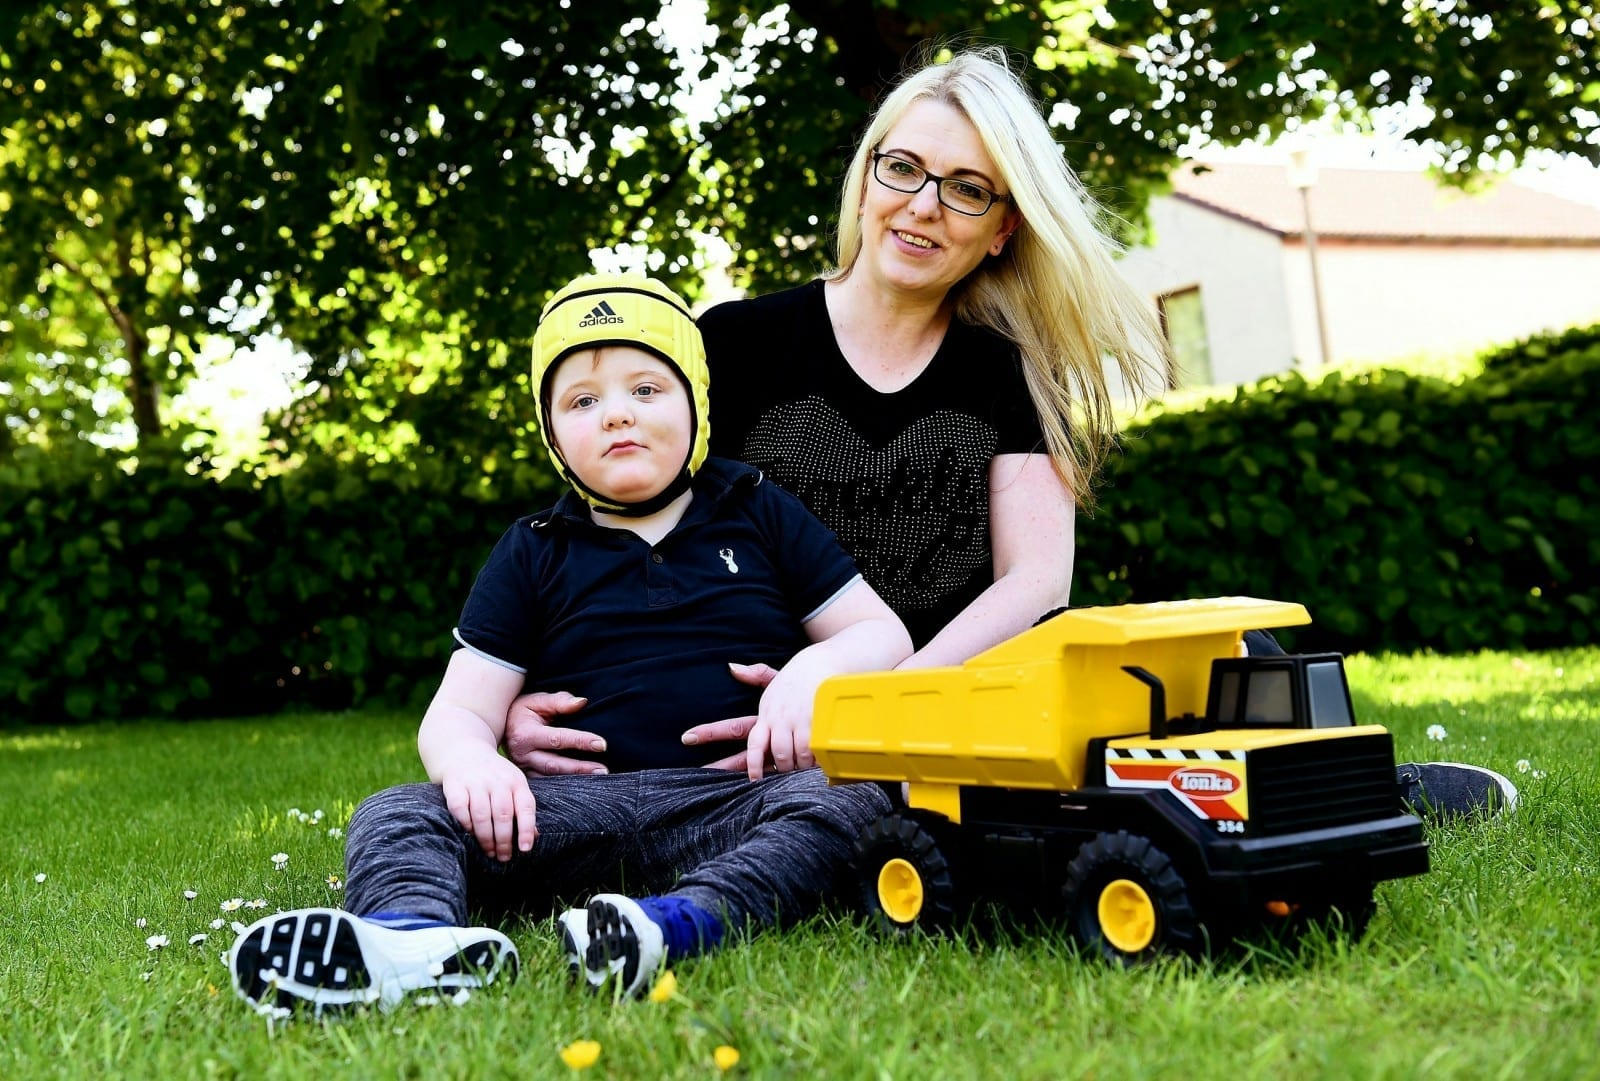 The Mum Of A Little Boy With Epilepsy Is Set To Bill Politicians More Than £230,000 For Medicinal Cannabis Costs